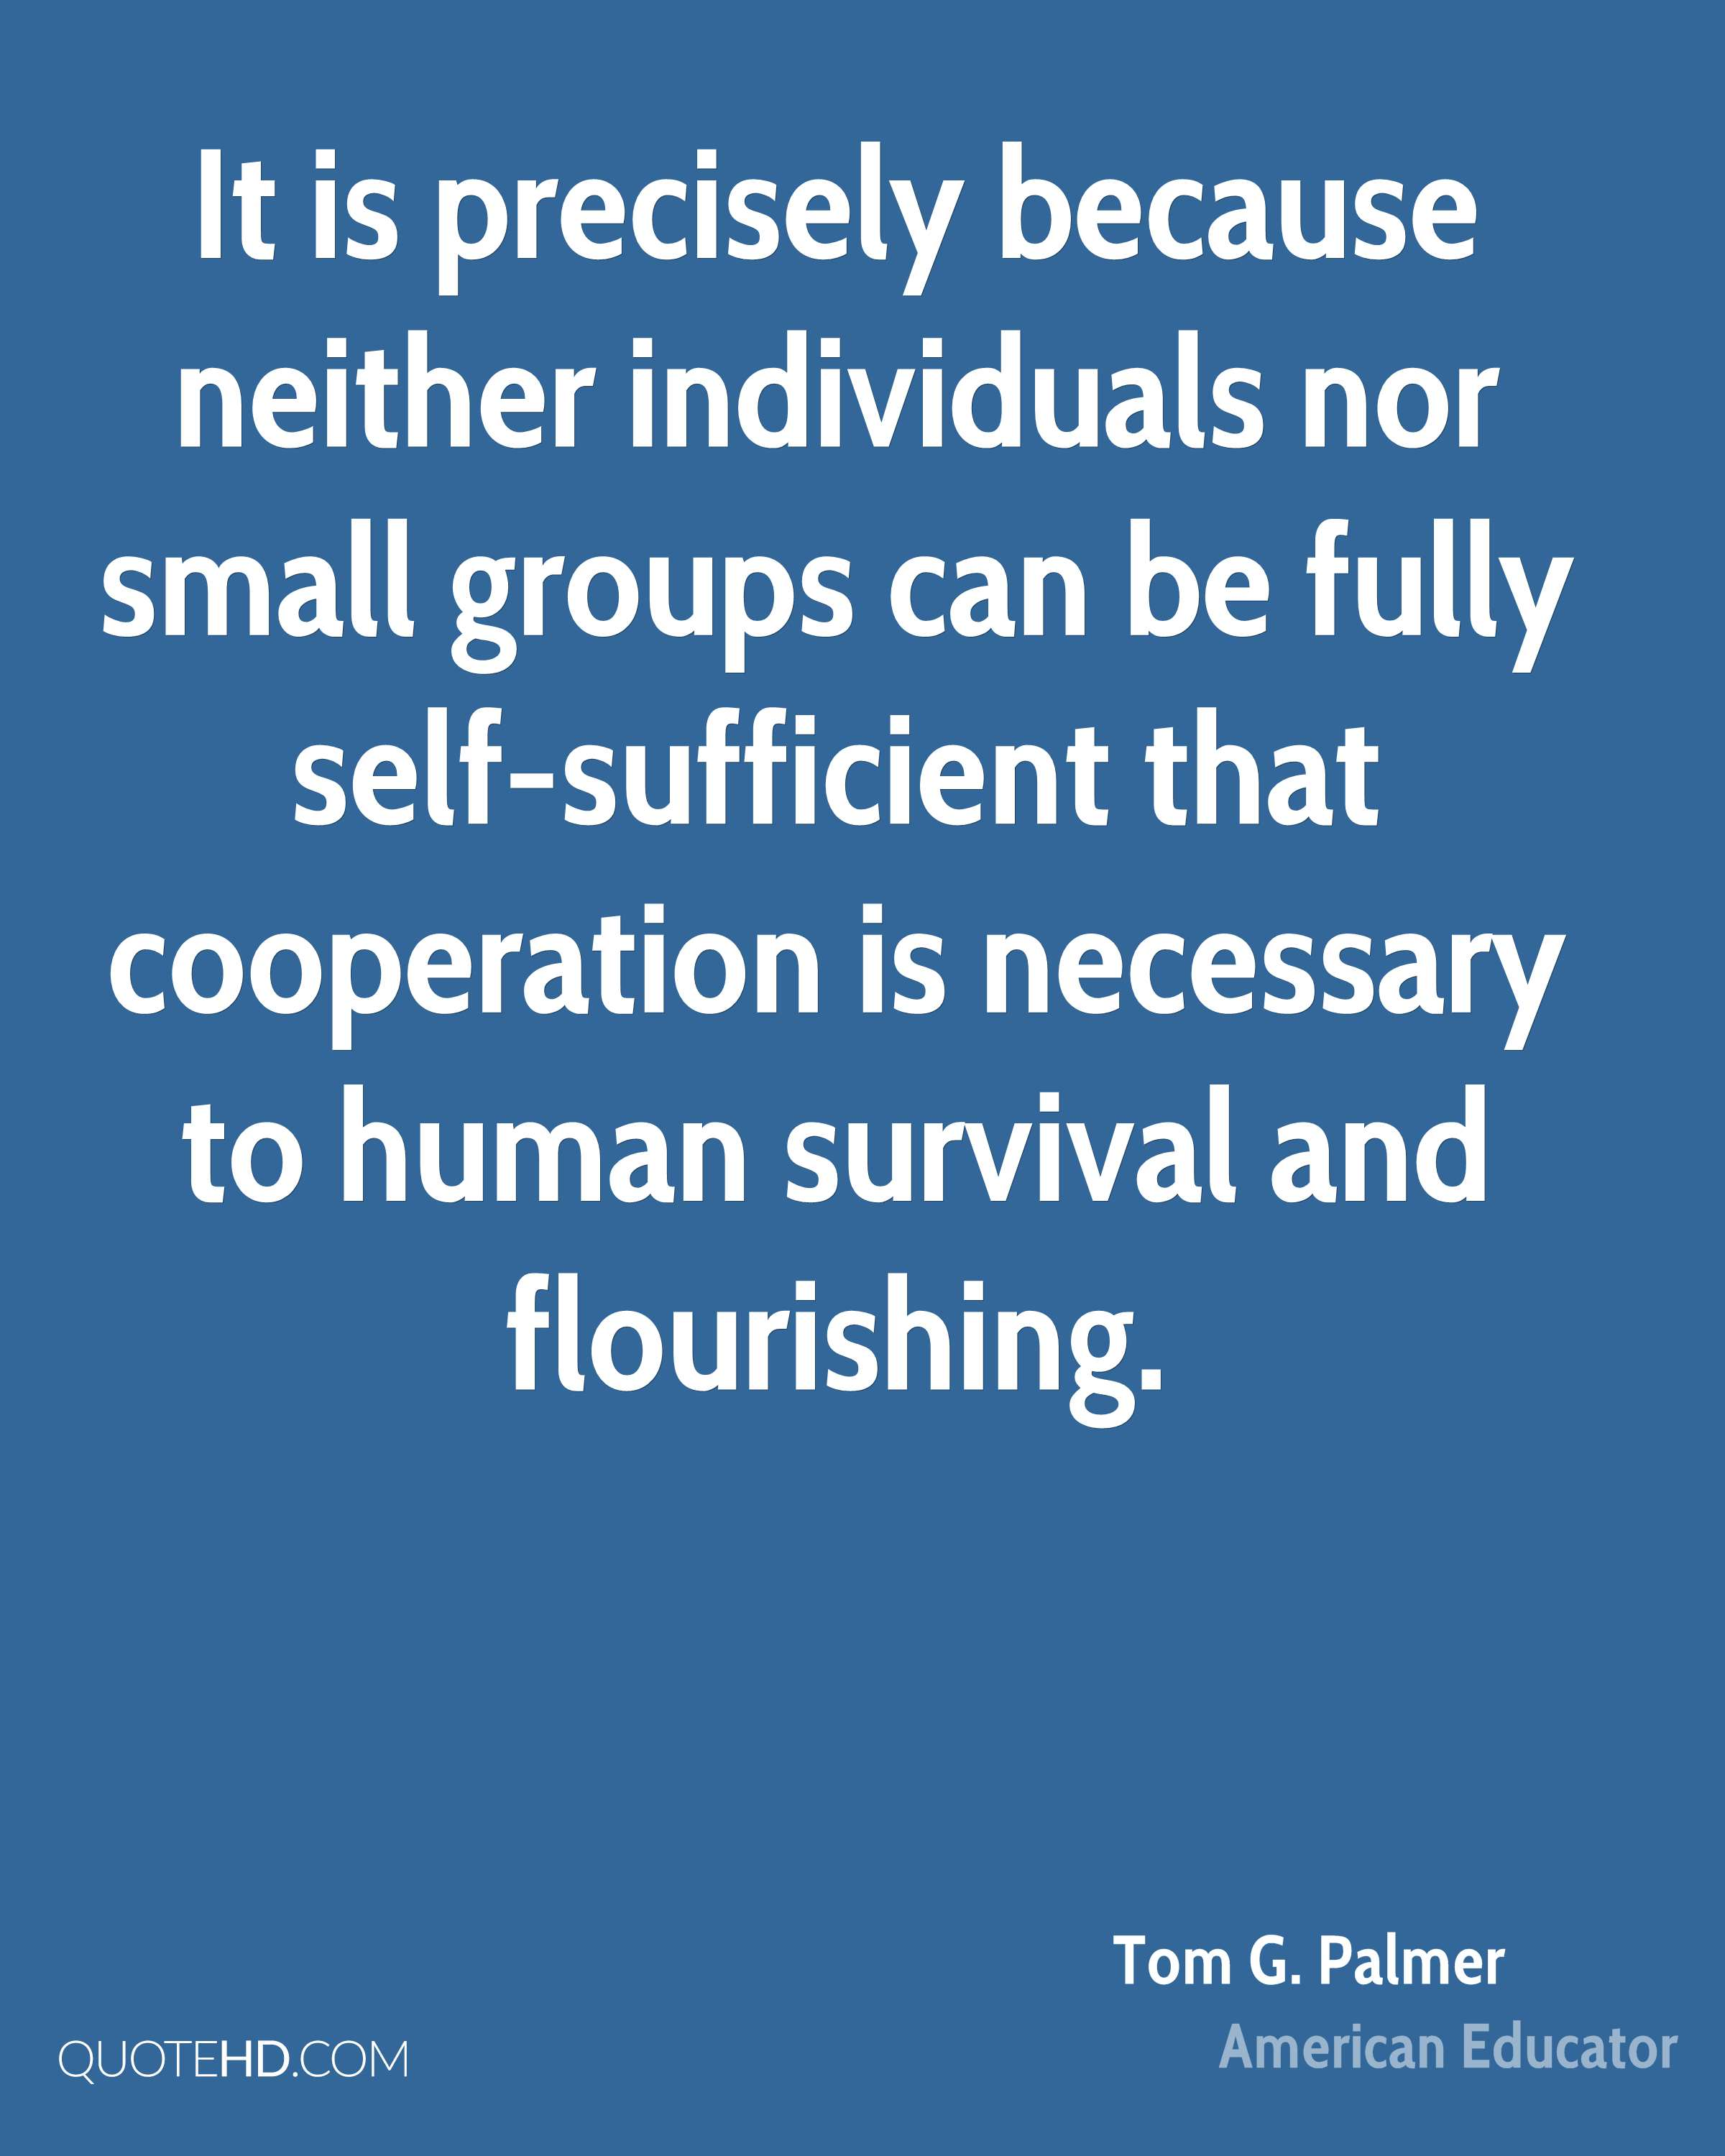 It is precisely because neither individuals nor small groups can be fully self-sufficient that cooperation is necessary to human survival and flourishing.